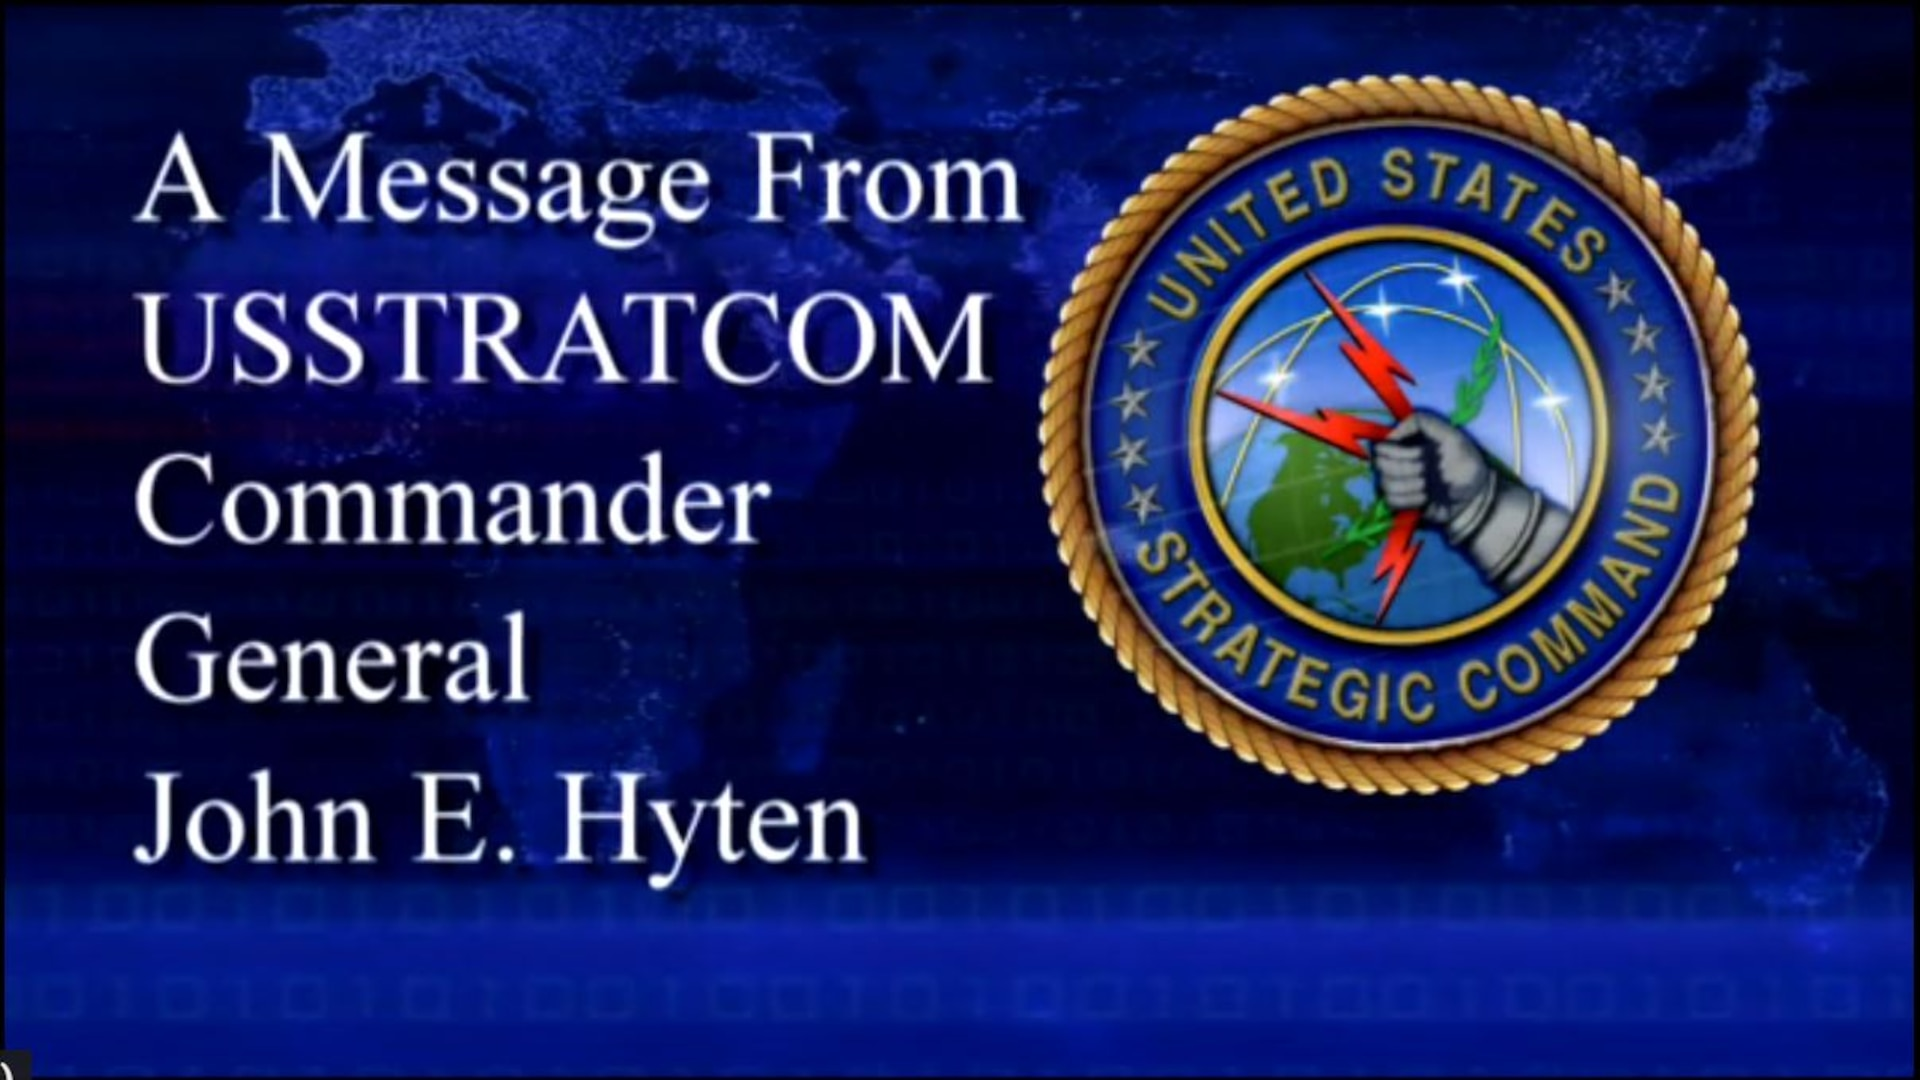 U.S. Strategic Command commander, Gen. John E. Hyten, thanks the 162,000 warfighters of the command for their hard work and dedication in 2018. He also outlines his vision for 2019, while reminding them how proud he is of what they do for the nation and our allies every day.